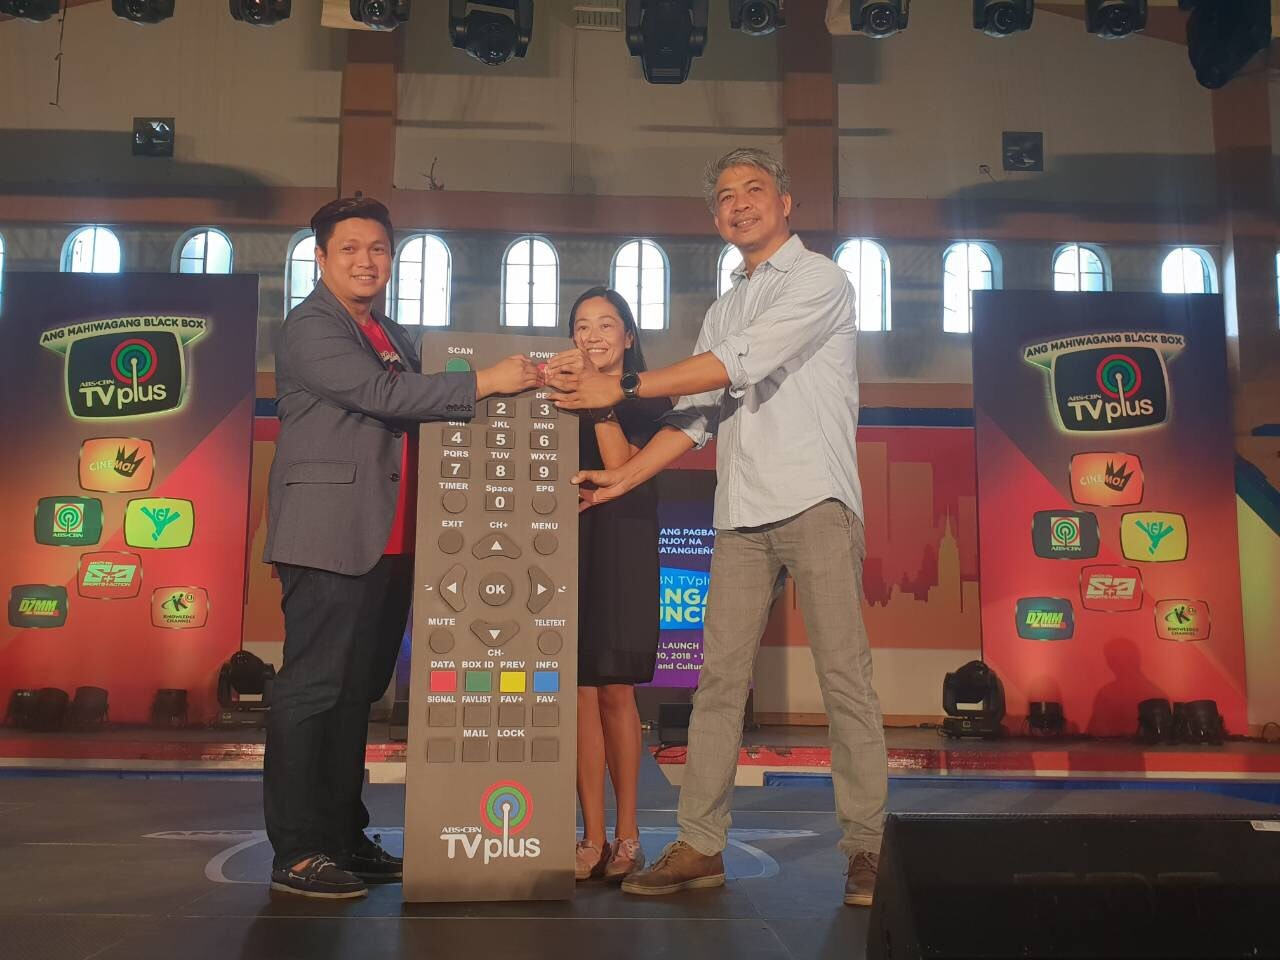 ABS-CBN expands digital TV broadcast in Batangas via ABS-CBN TVplus